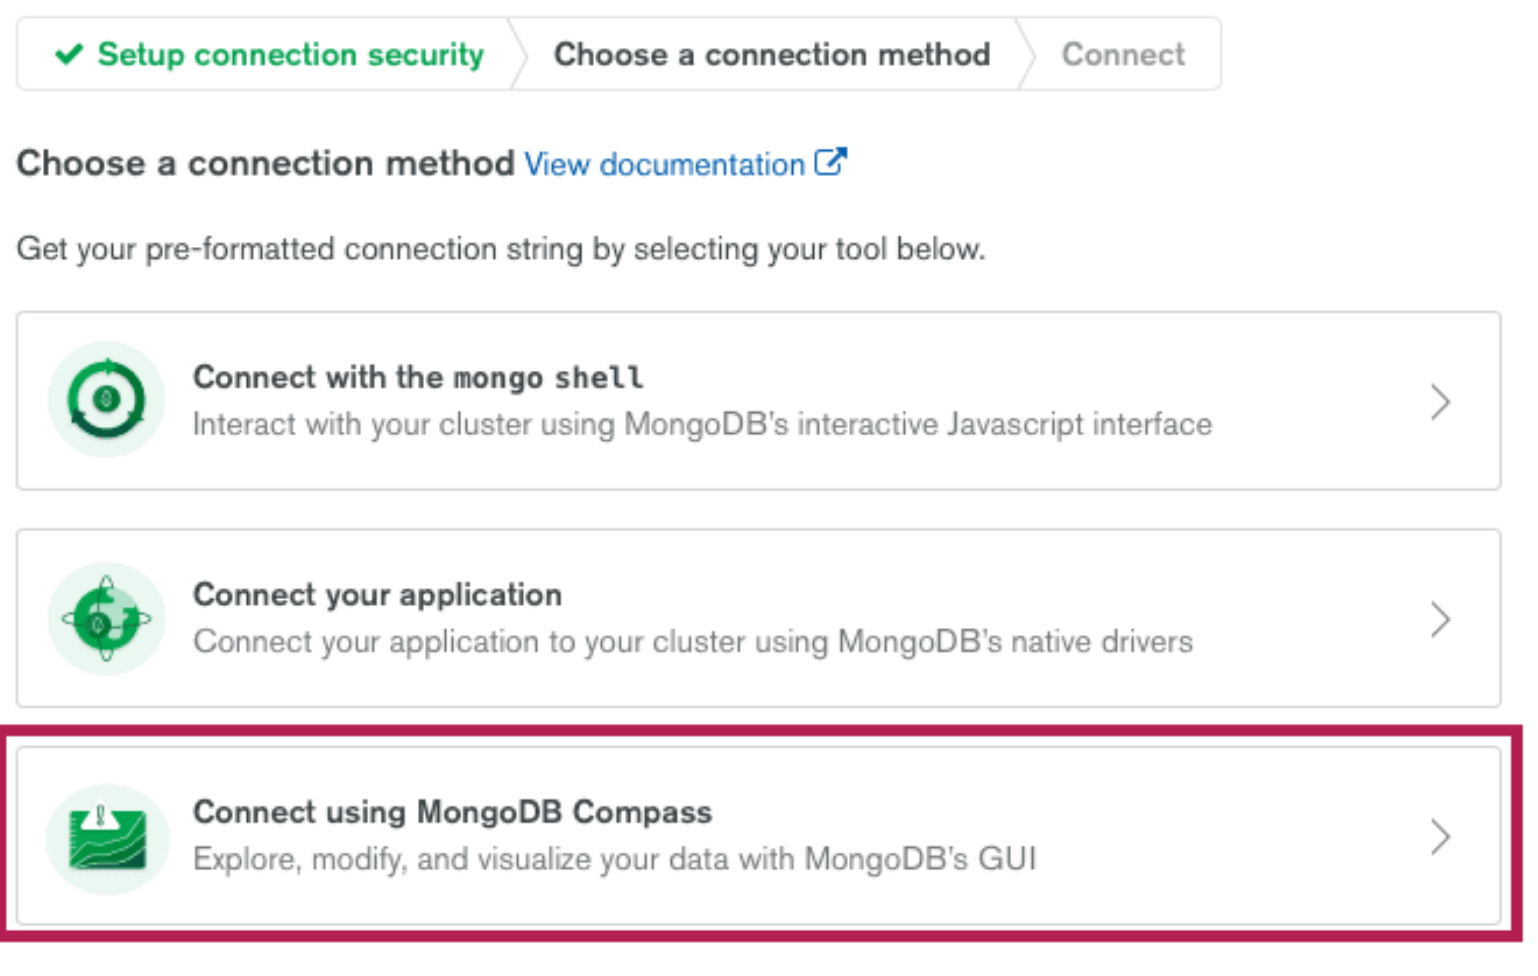 Screenshot of the 'Choose a connection method' screen on MongoDB Atlas, with a box highlighting the 'Connect using MongoDB Compass' button.